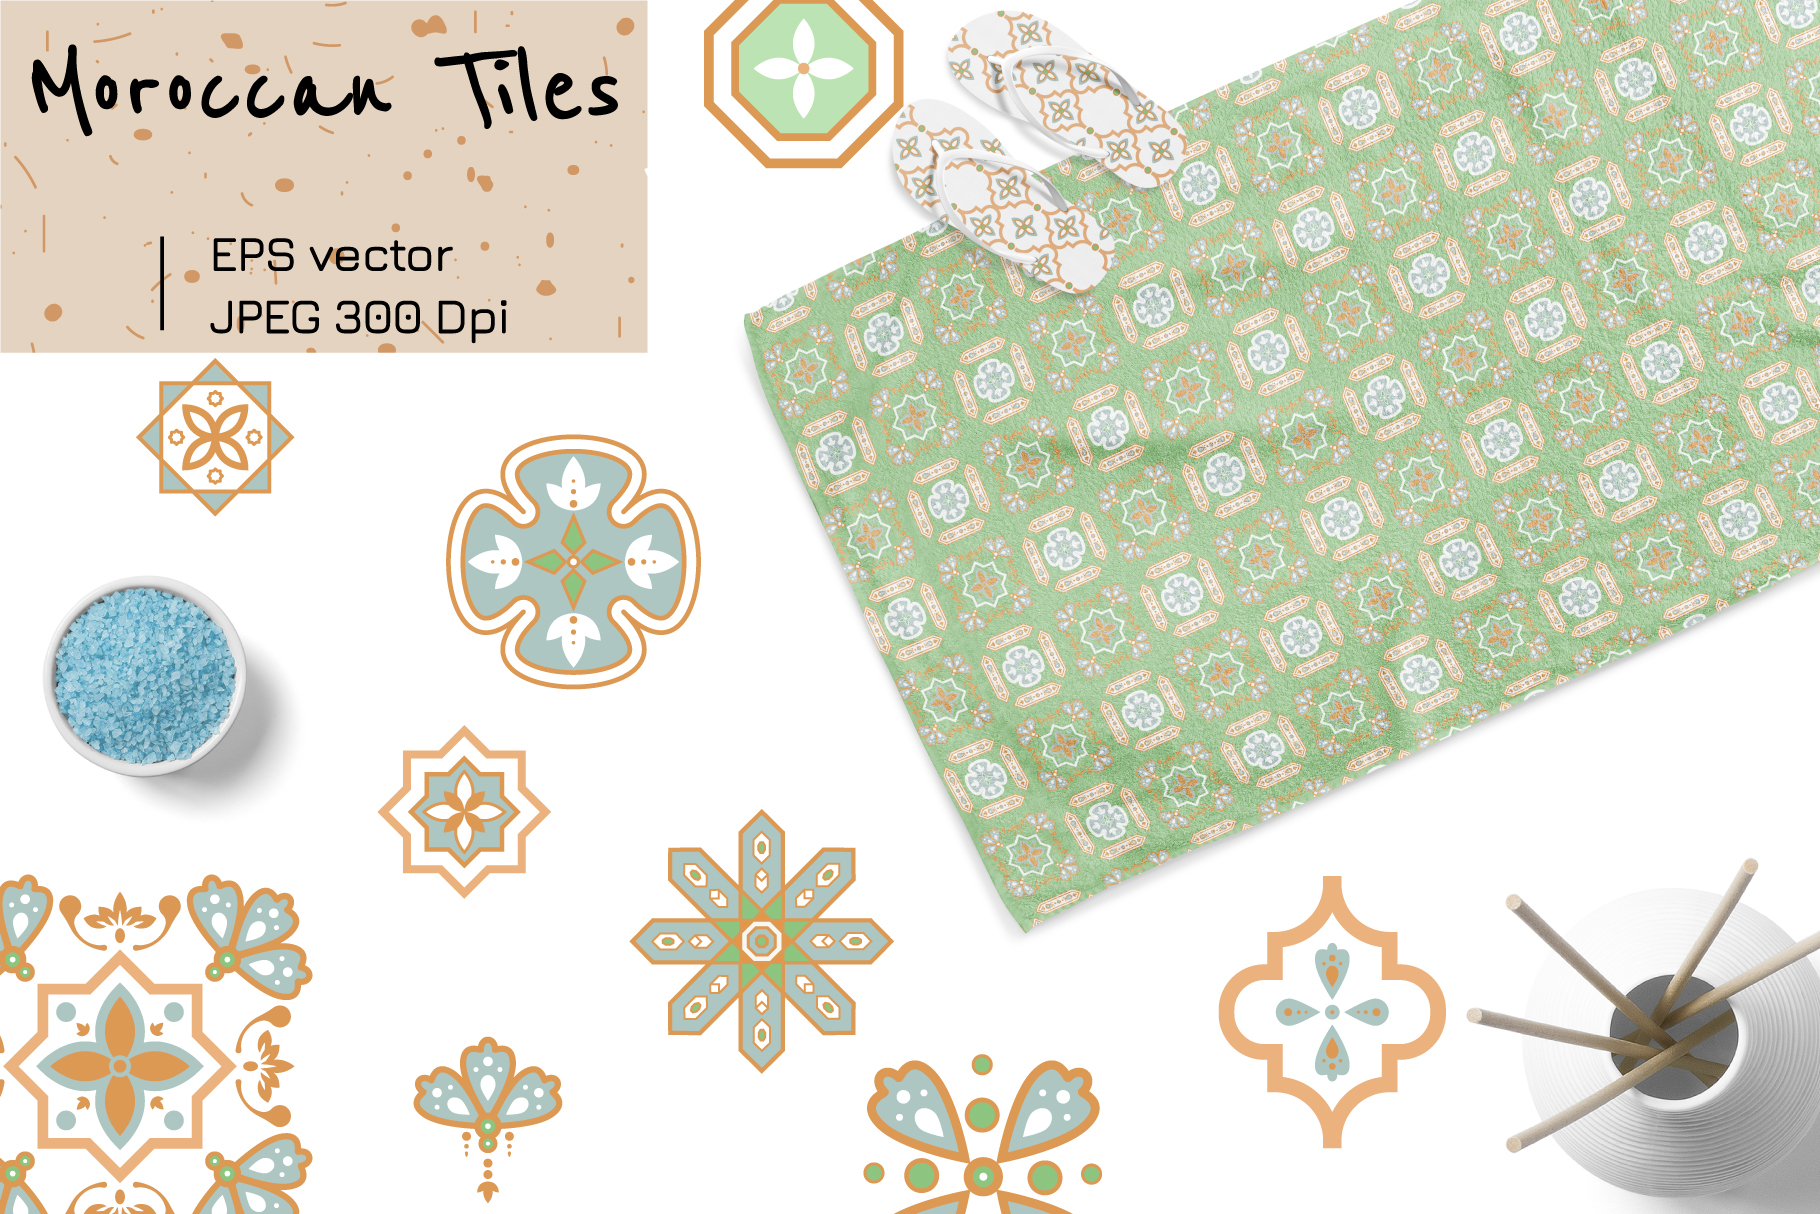 Moroccan Tiles - 20 patterns example image 5